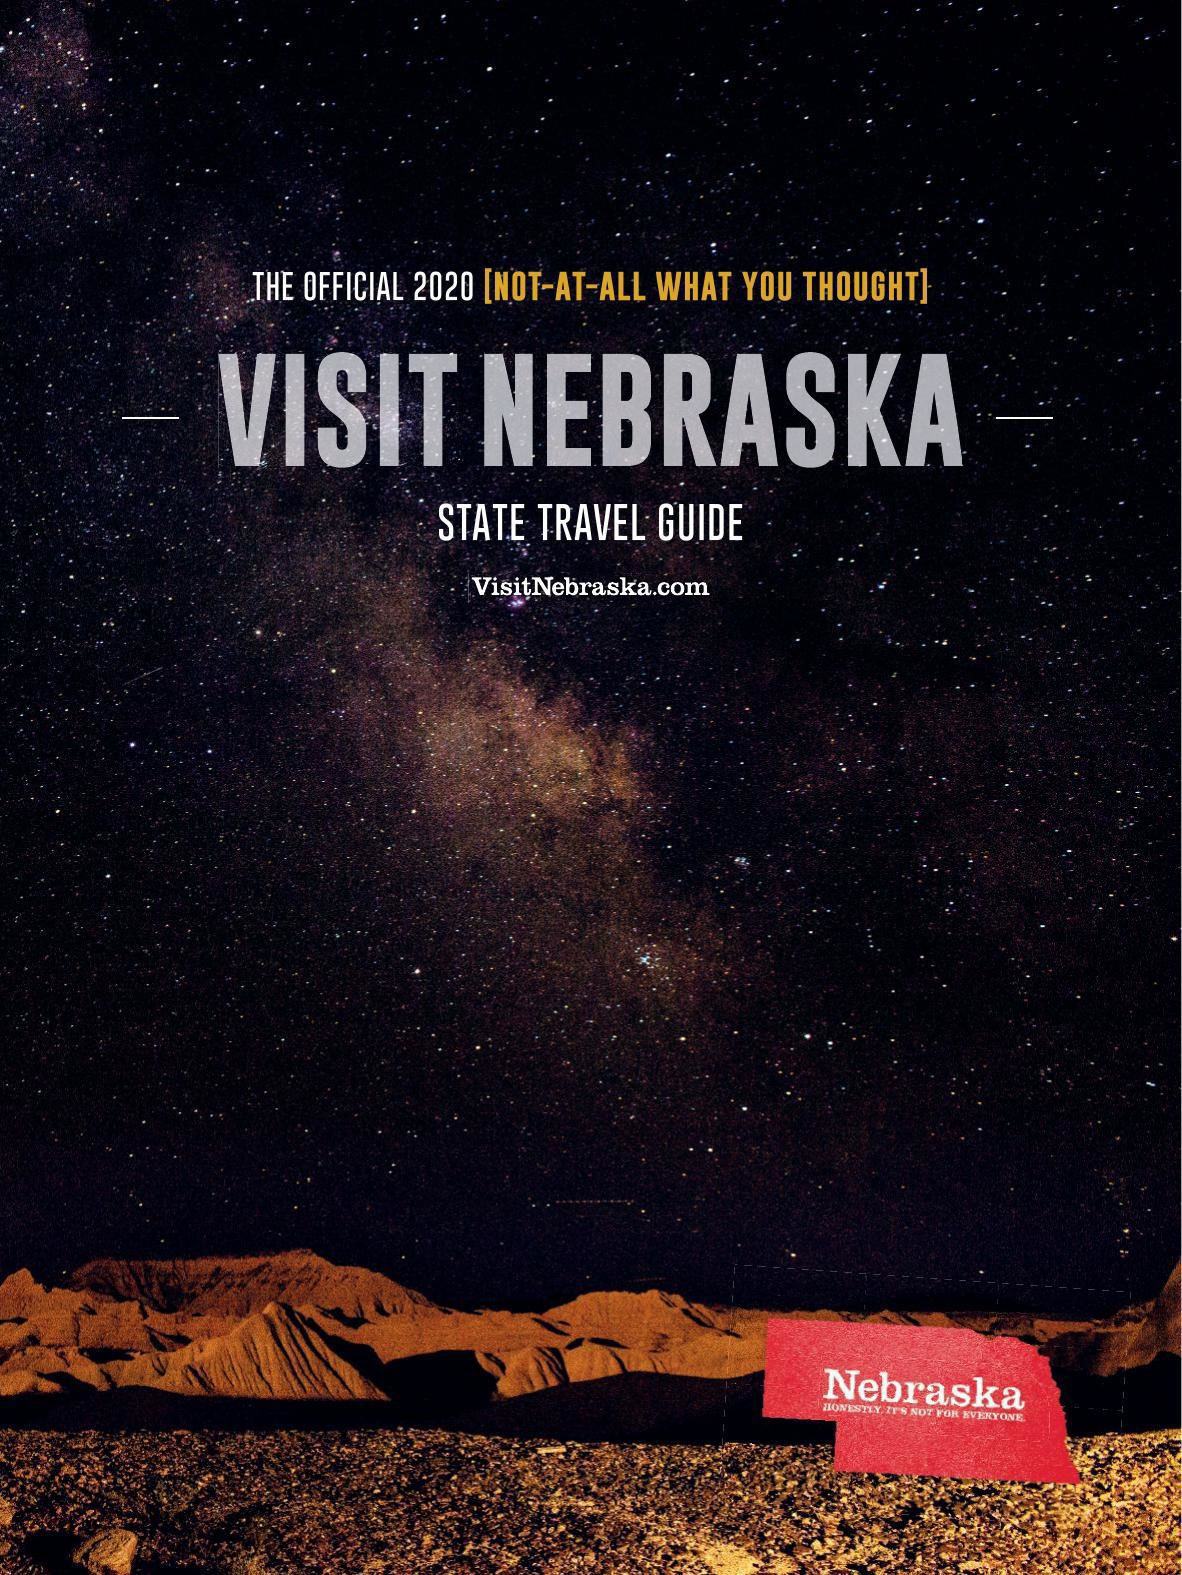 Nebraska, 'Not-At-All What You Thought'